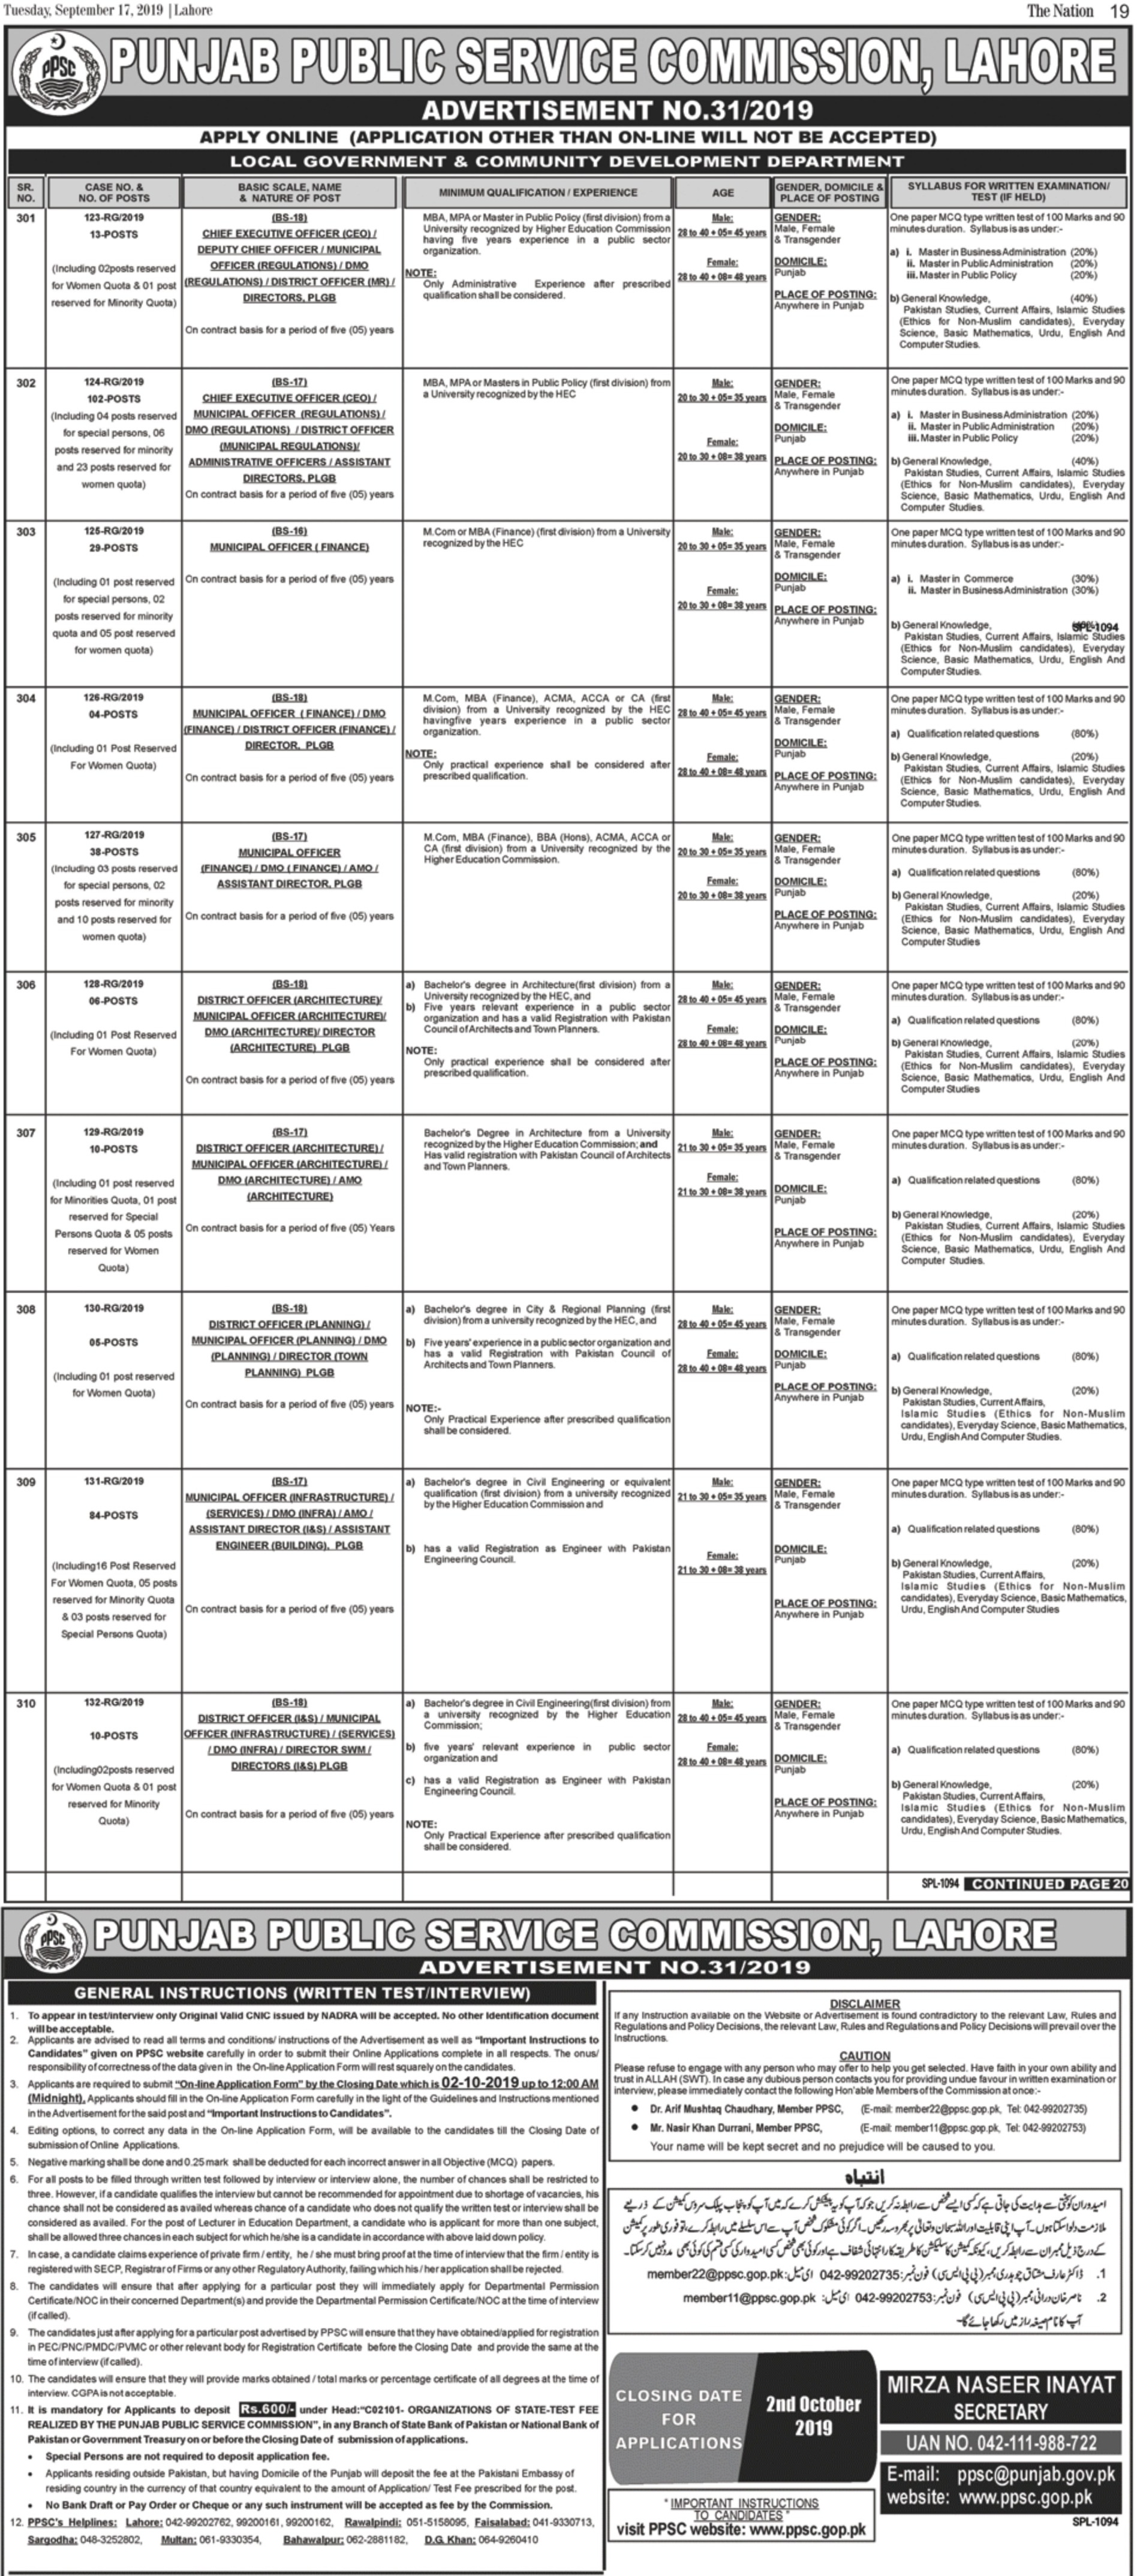 PPSC Local Government & Community Development Department Jobs 2019 Online Apply Roll No Slip